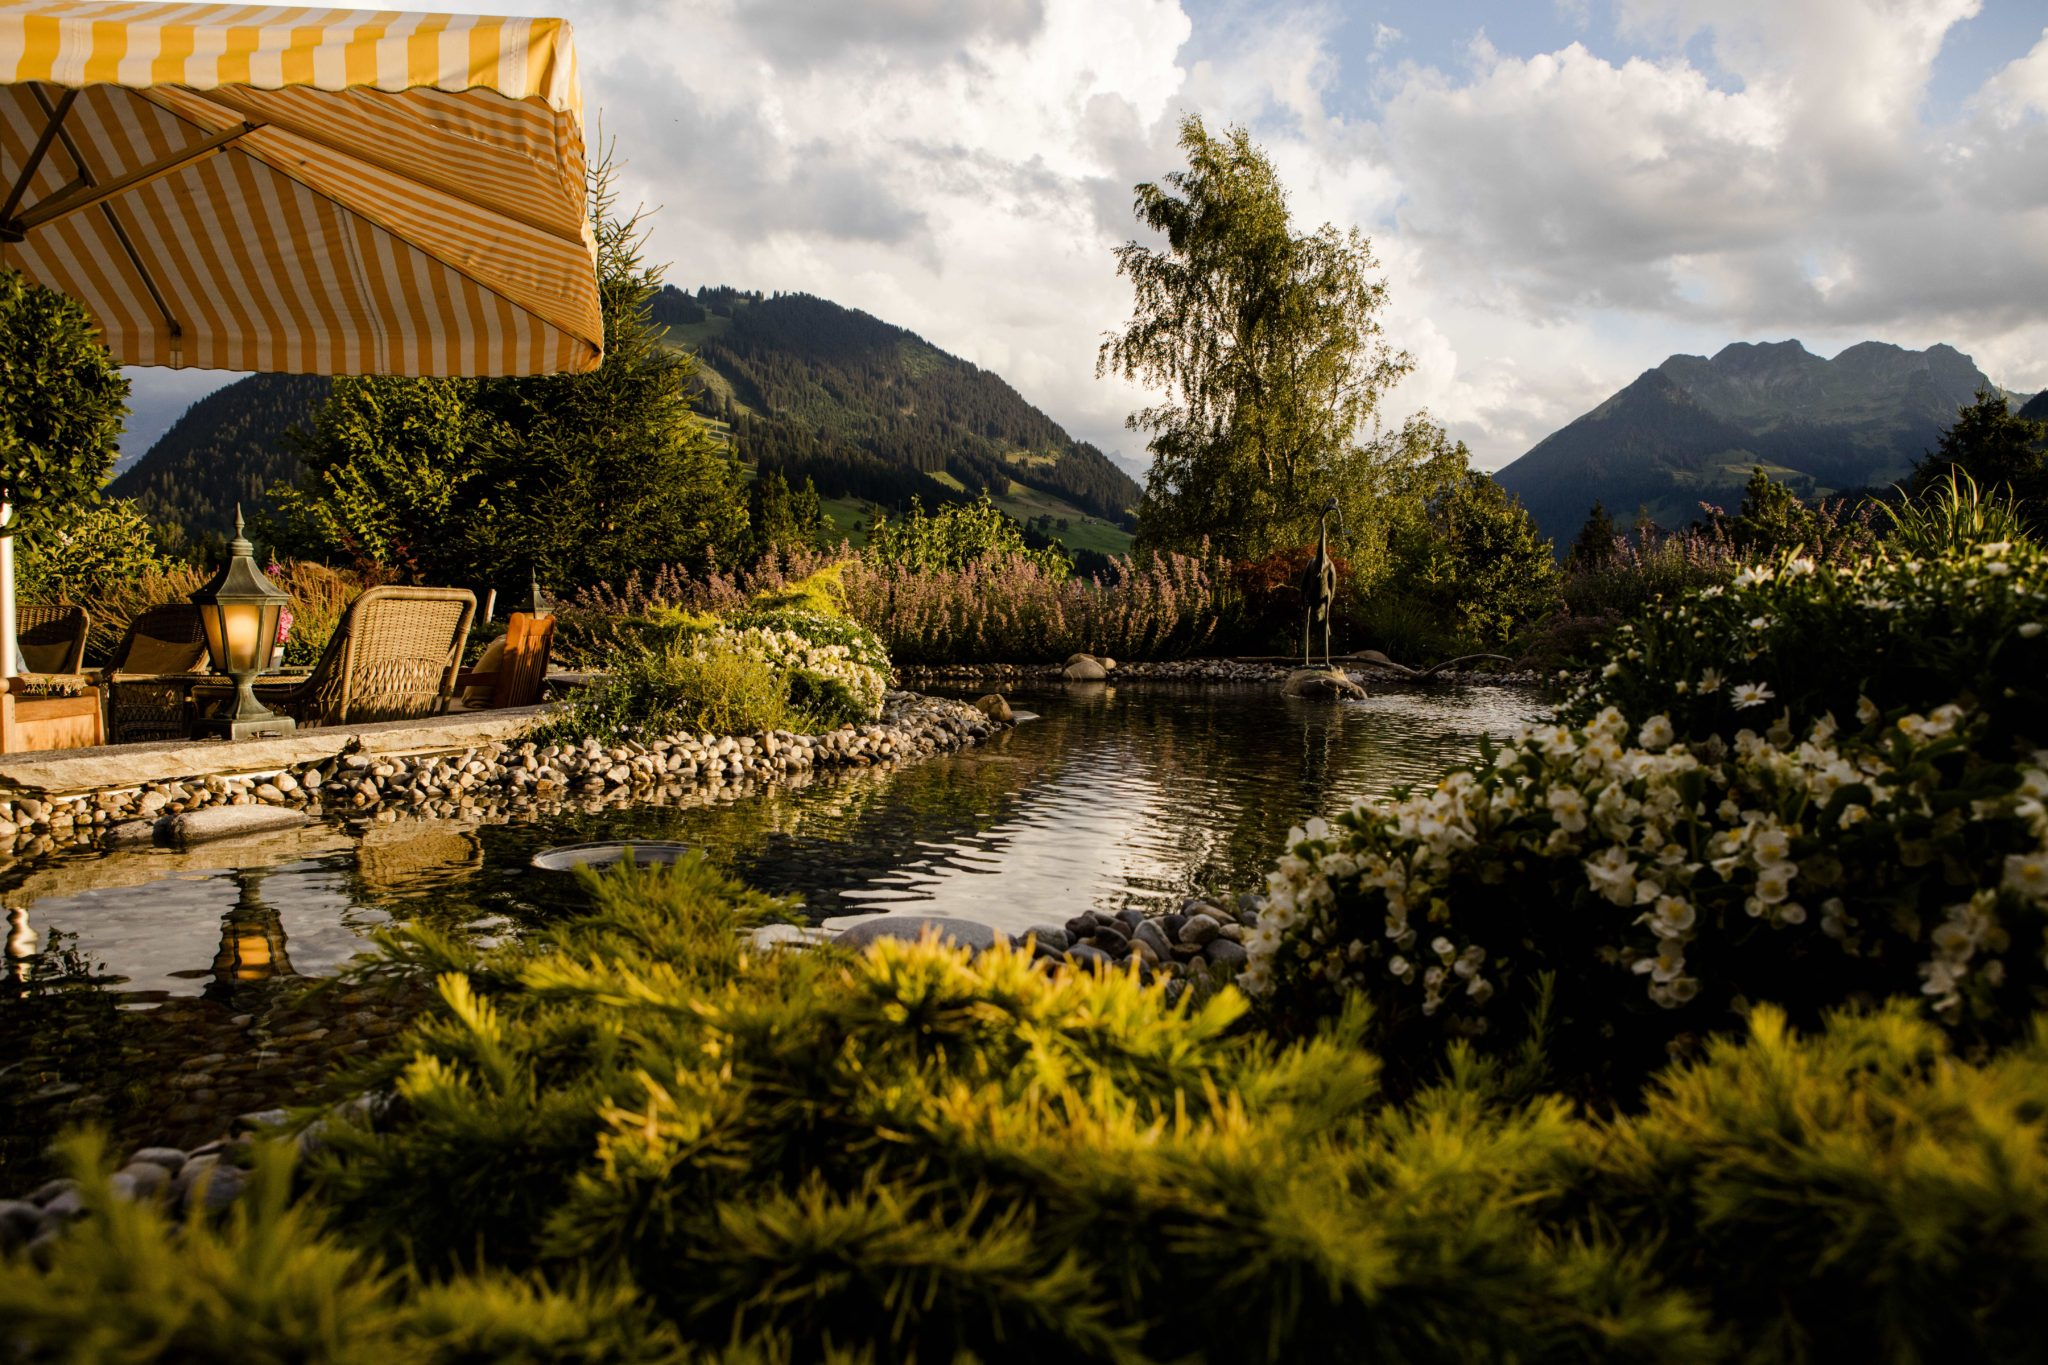 Gstaad Palace, Switzerland (2018) - 5-Star Hotel For Families